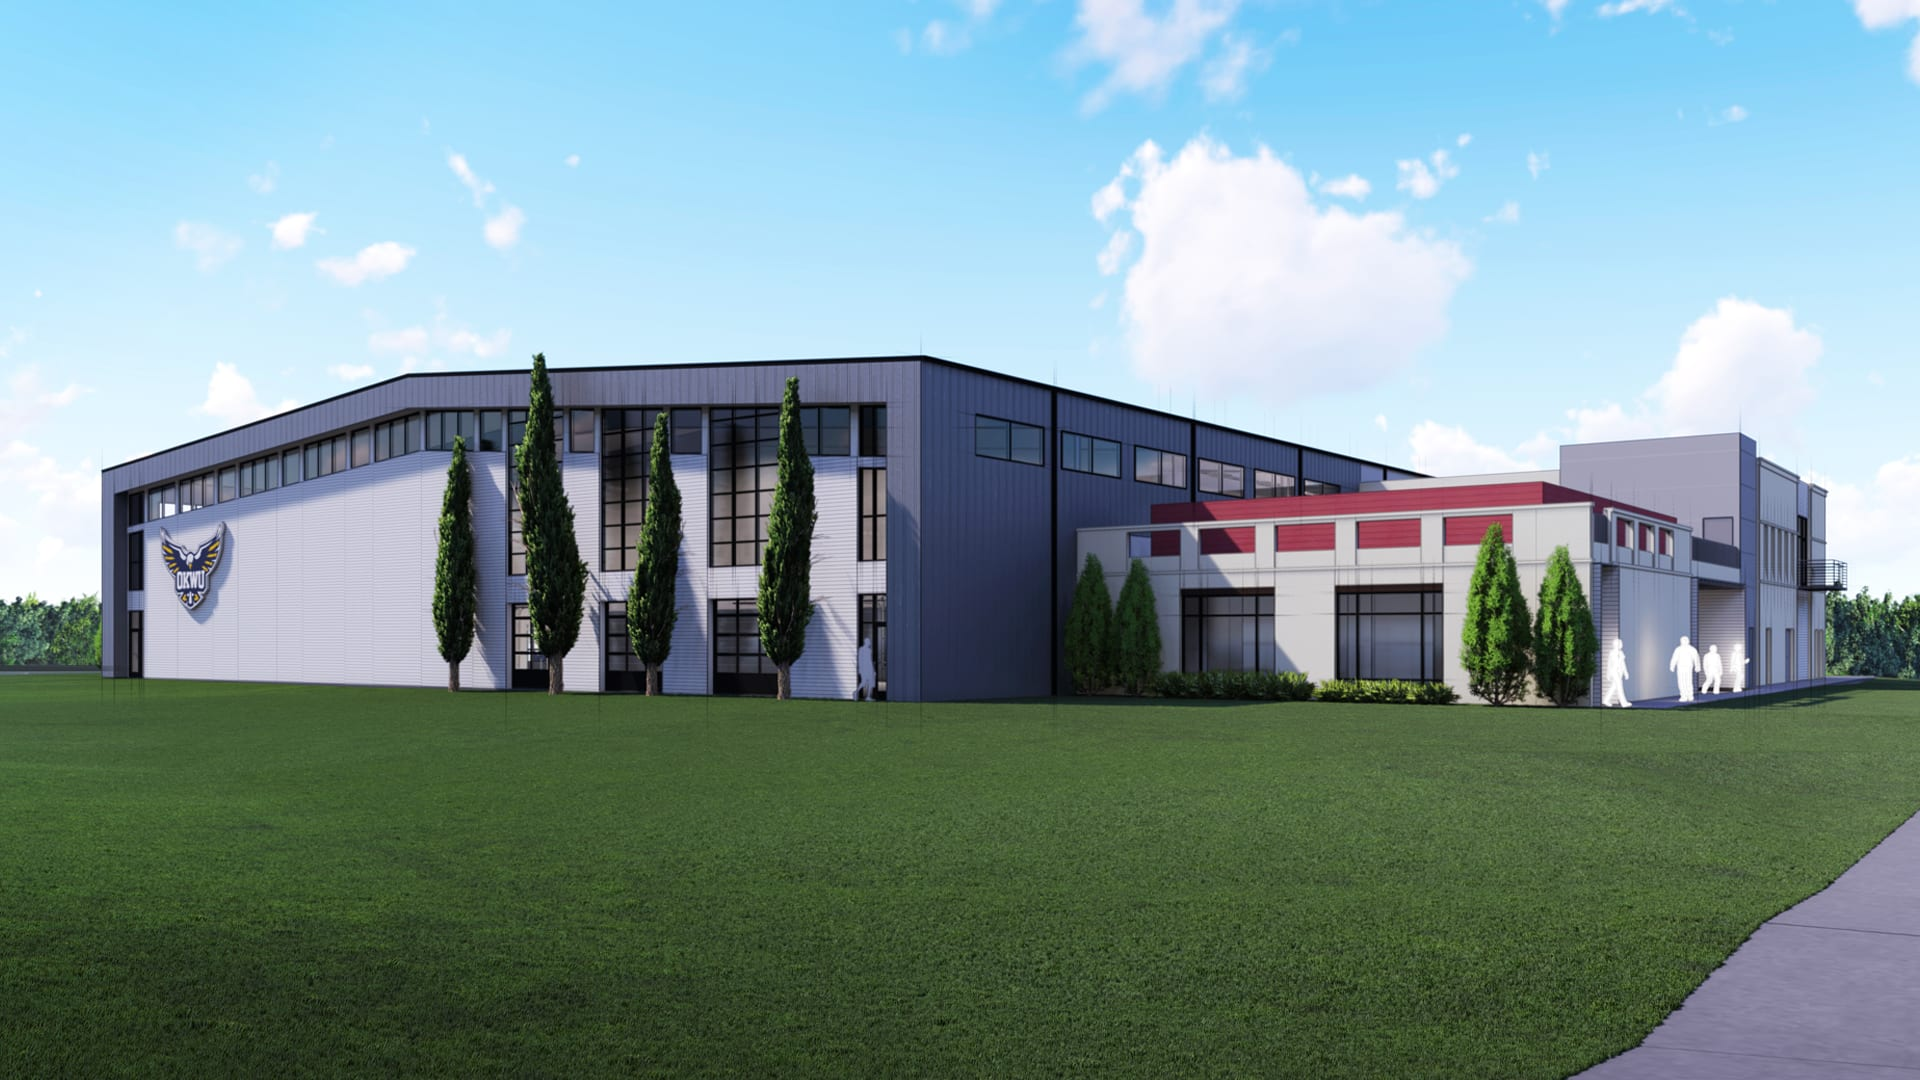 Rendering of field house exterior northeast view